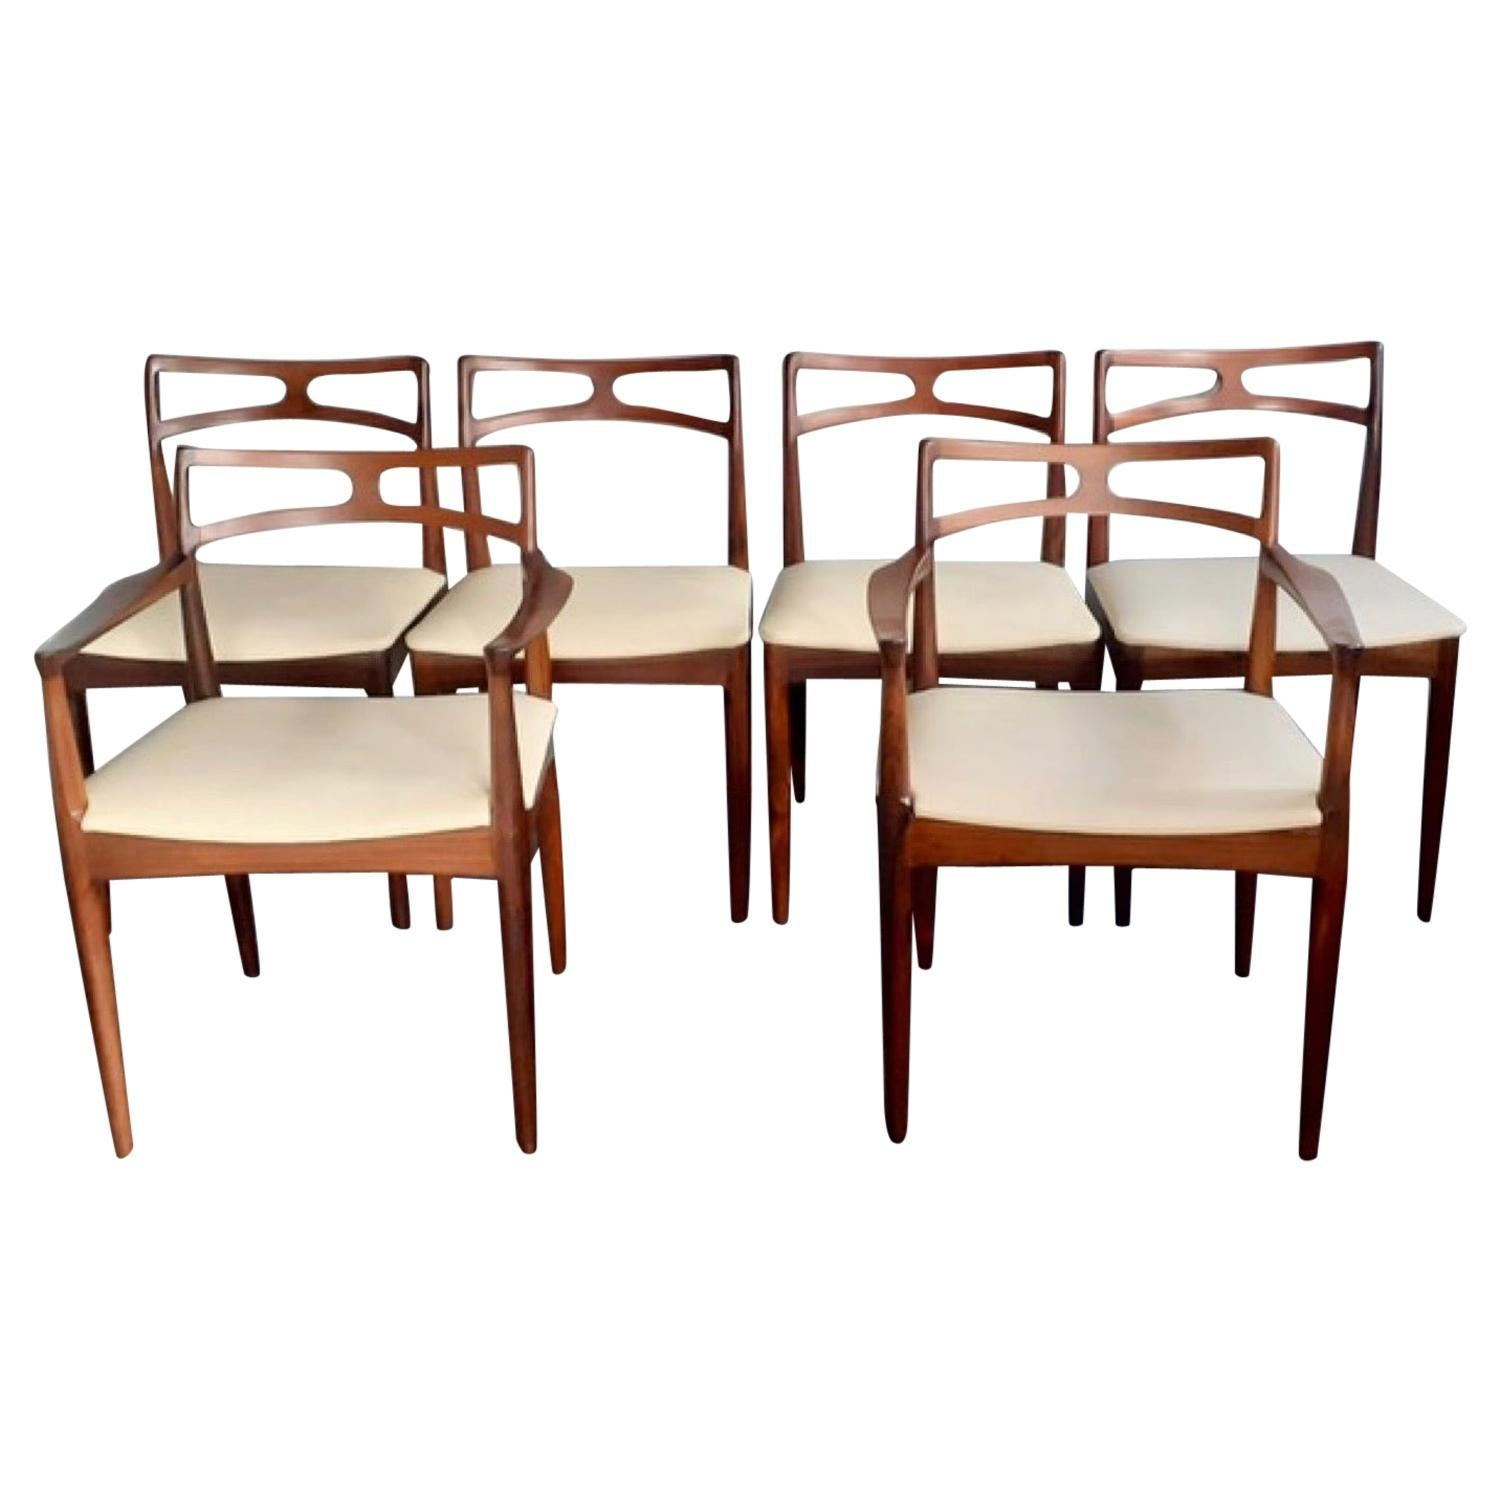 Set of 6 1960s Danish Rosewood Dining Chairs by Johannes Andersen Model 94